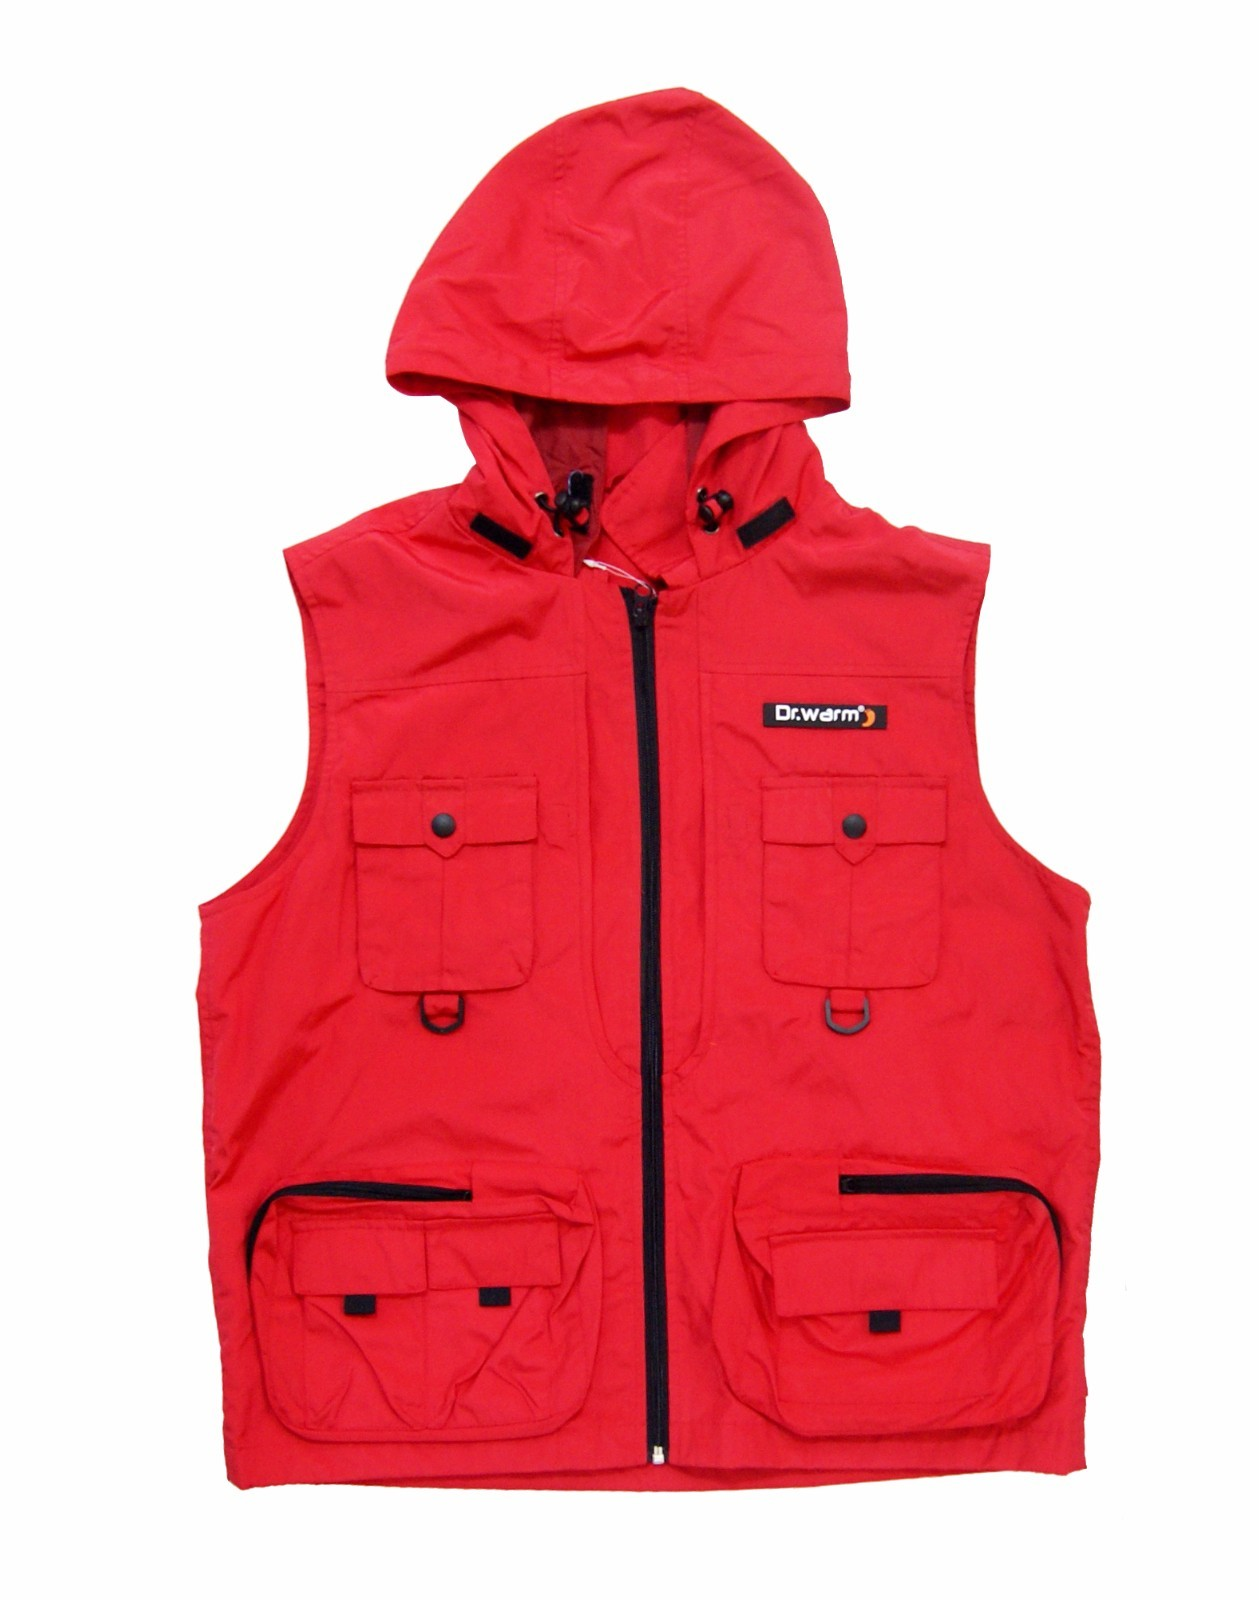 heated work vest winter smart Dr. Warm Brand